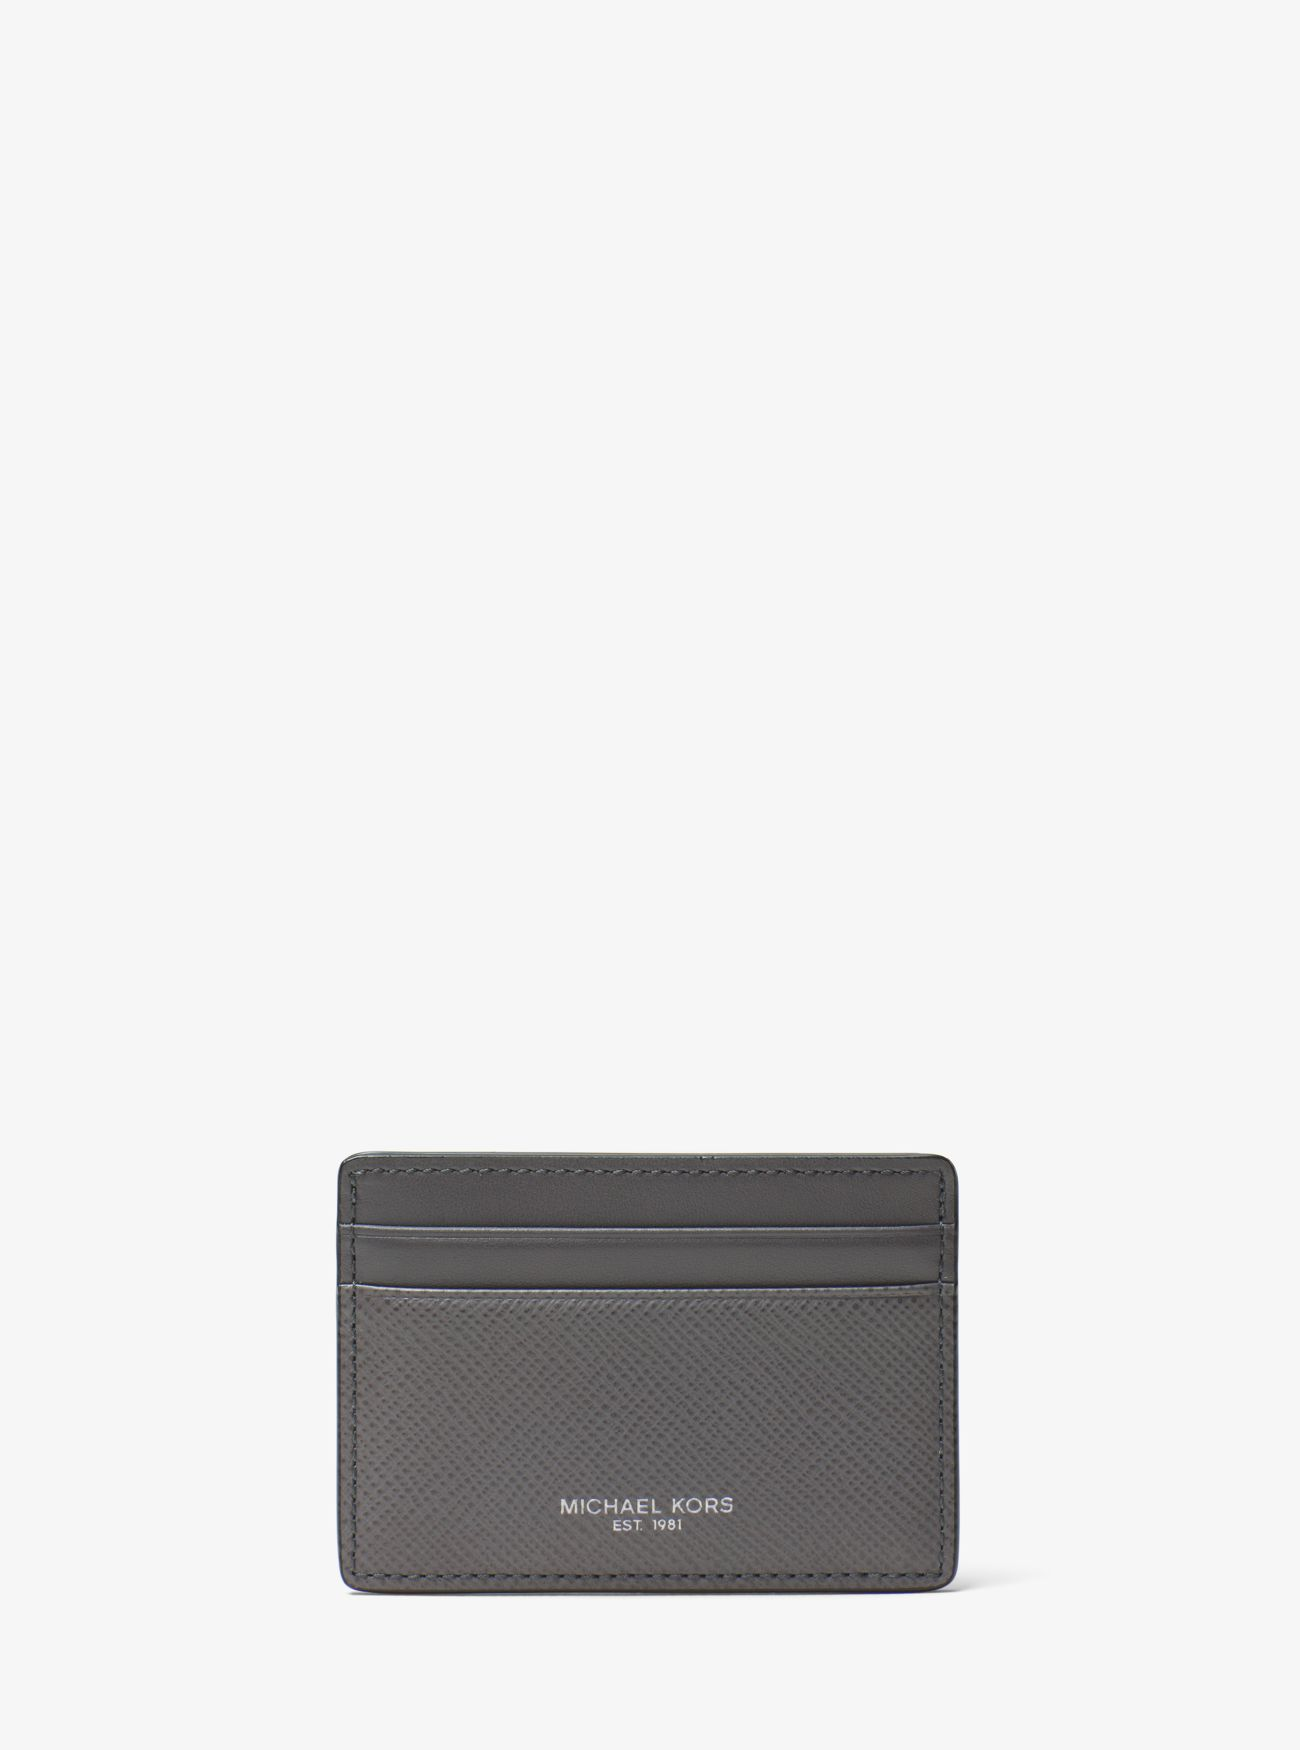 dd82ba93c3a4 Harrison Leather Card Case Harrison Leather Card Case Harrison Leather Card  Case. Michael Kors Mens